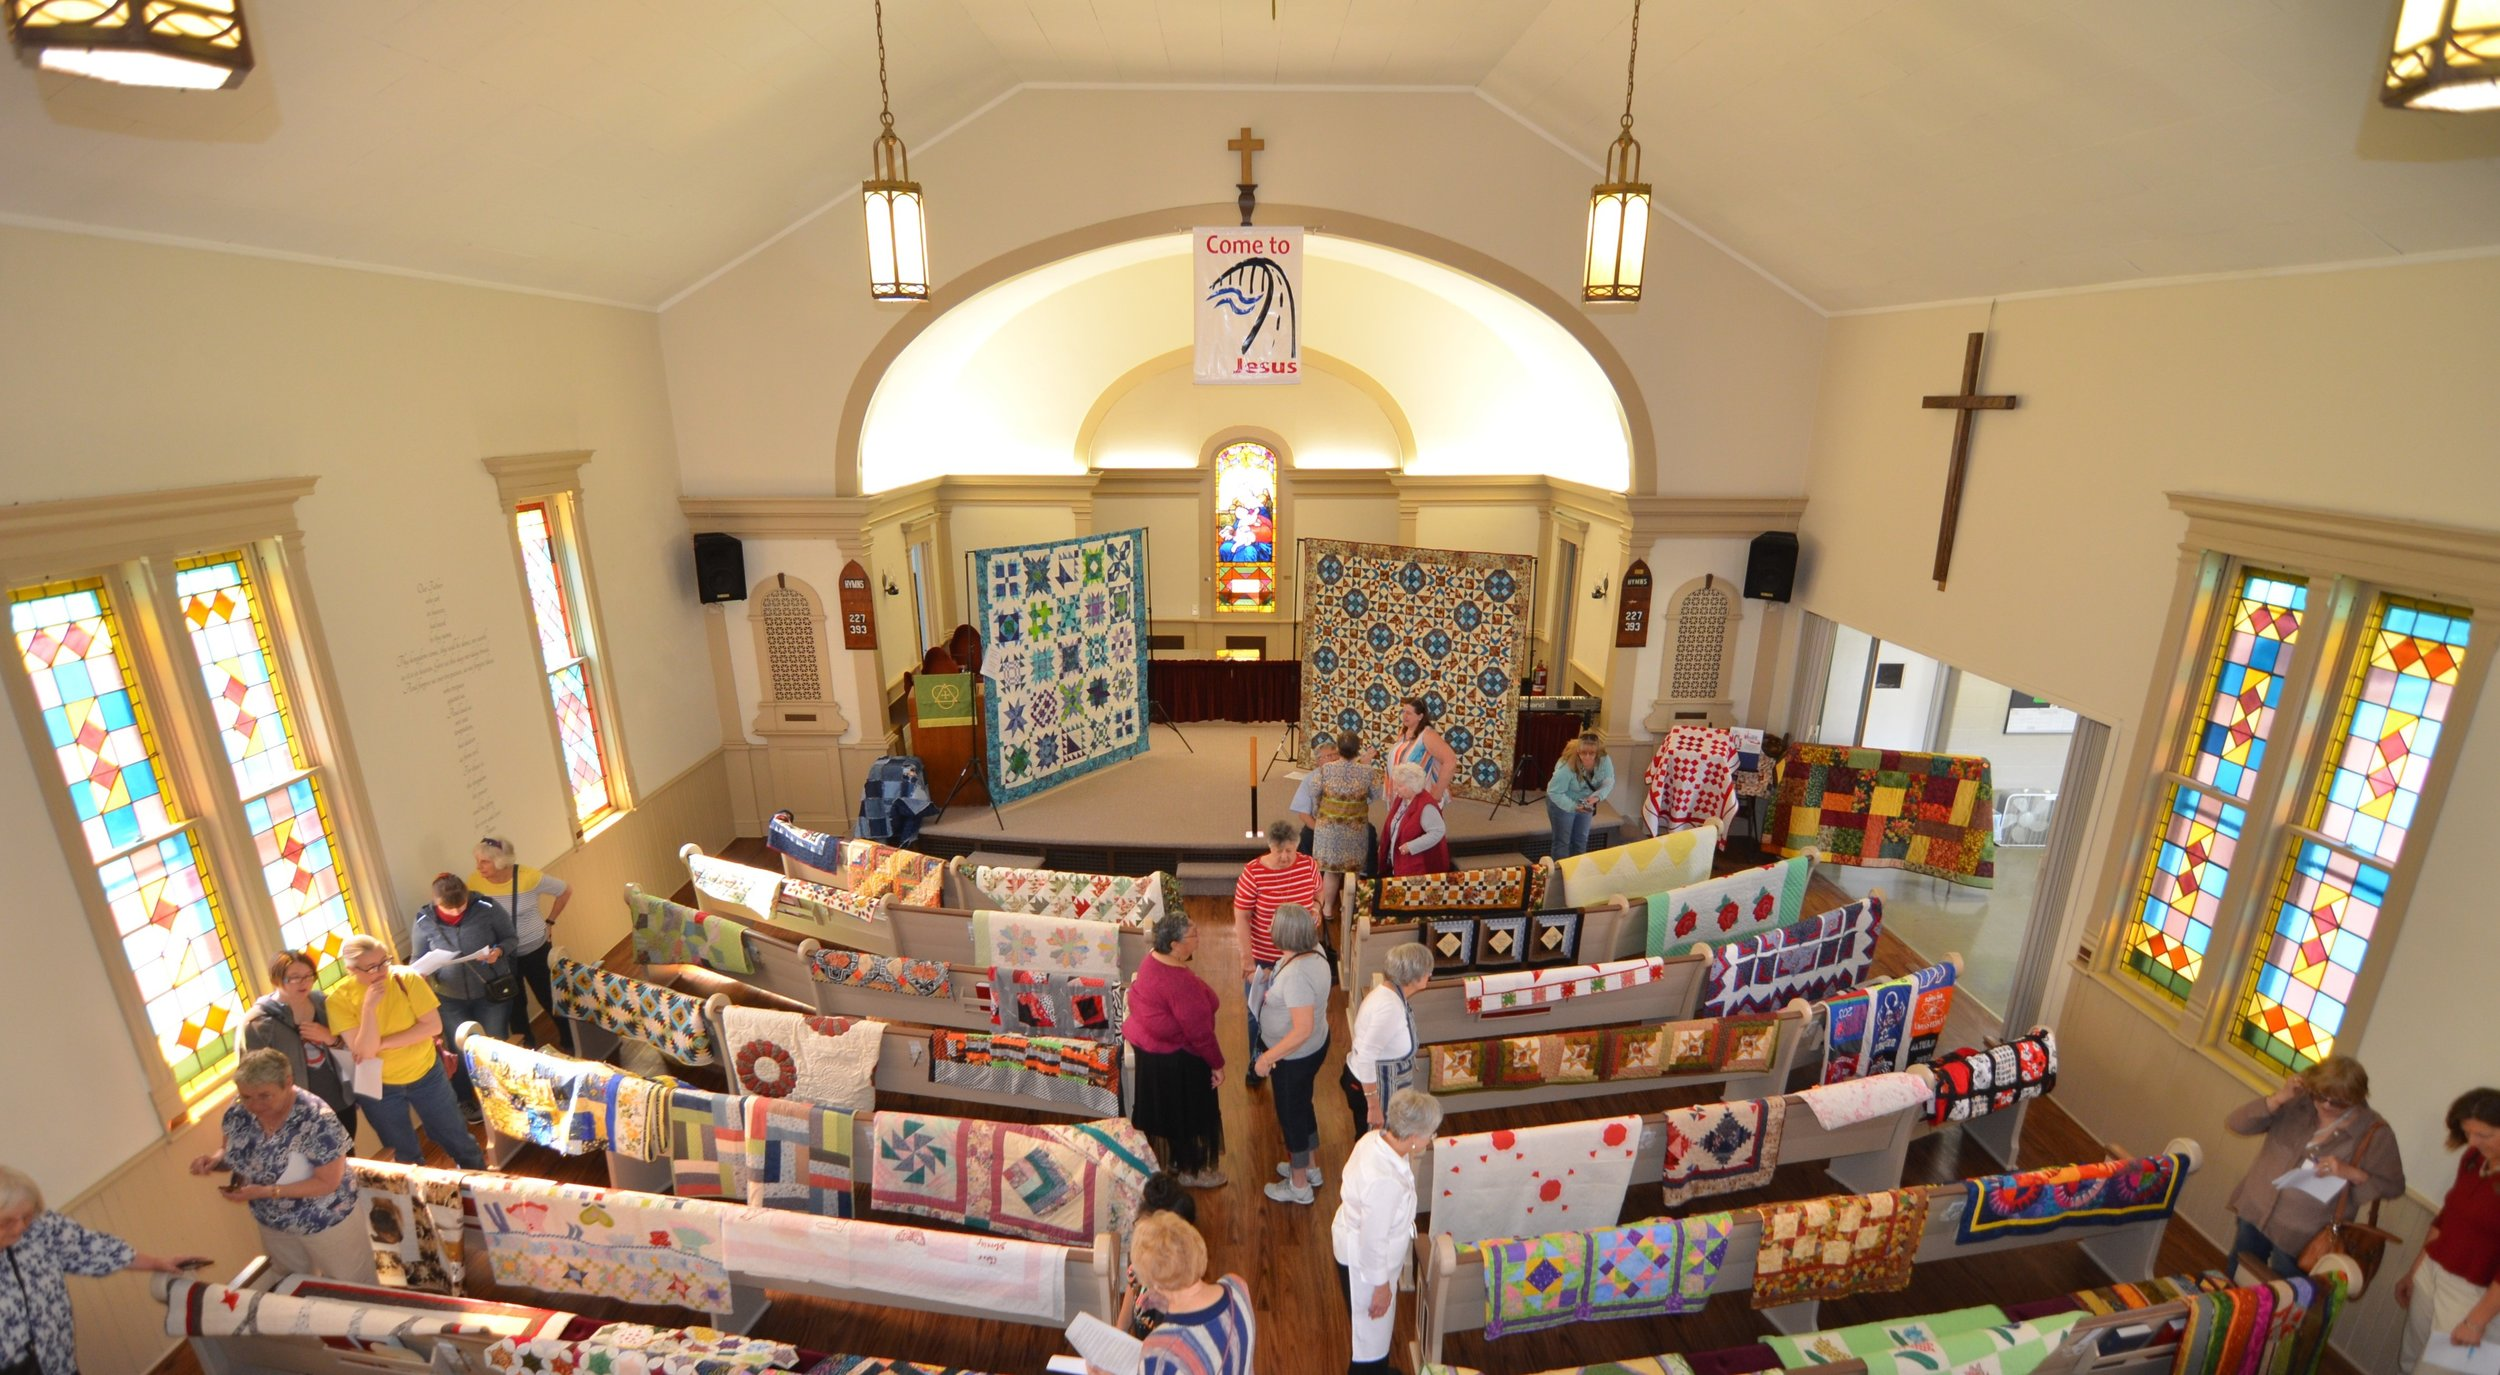 QUILTS IN THE VILLAGE: May 5, 2018